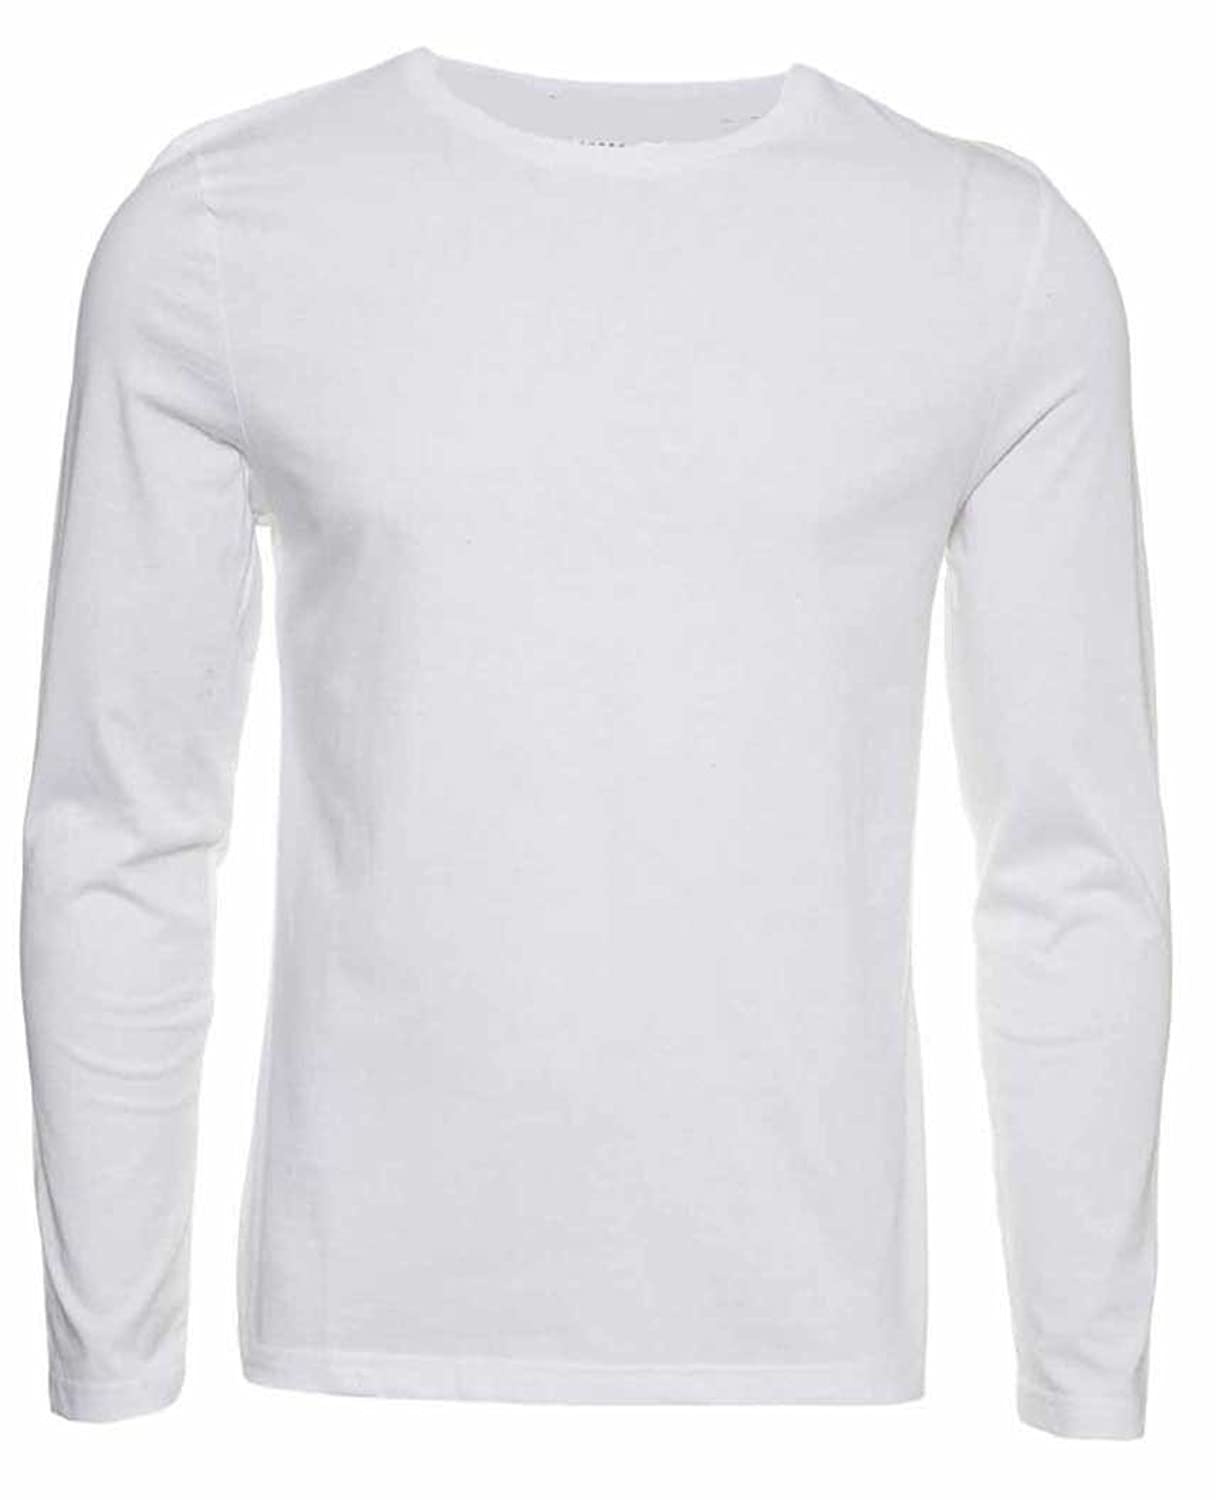 Mens long sleeve white tee shirts custom shirt Mens long sleeve white t shirt